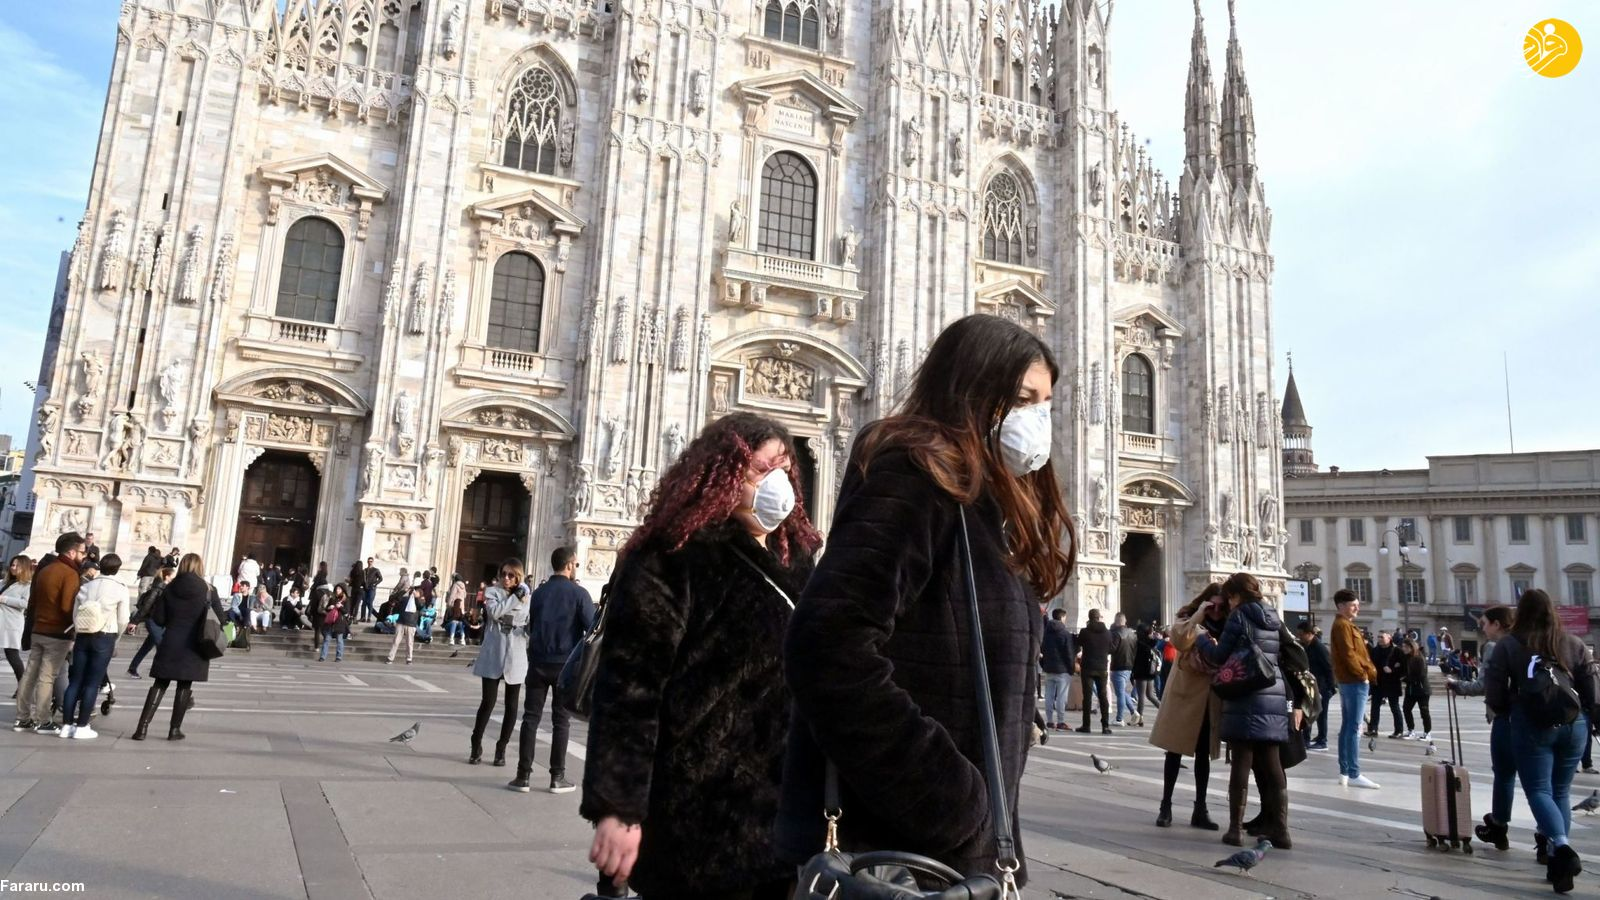 Italy shuts all schools and universities